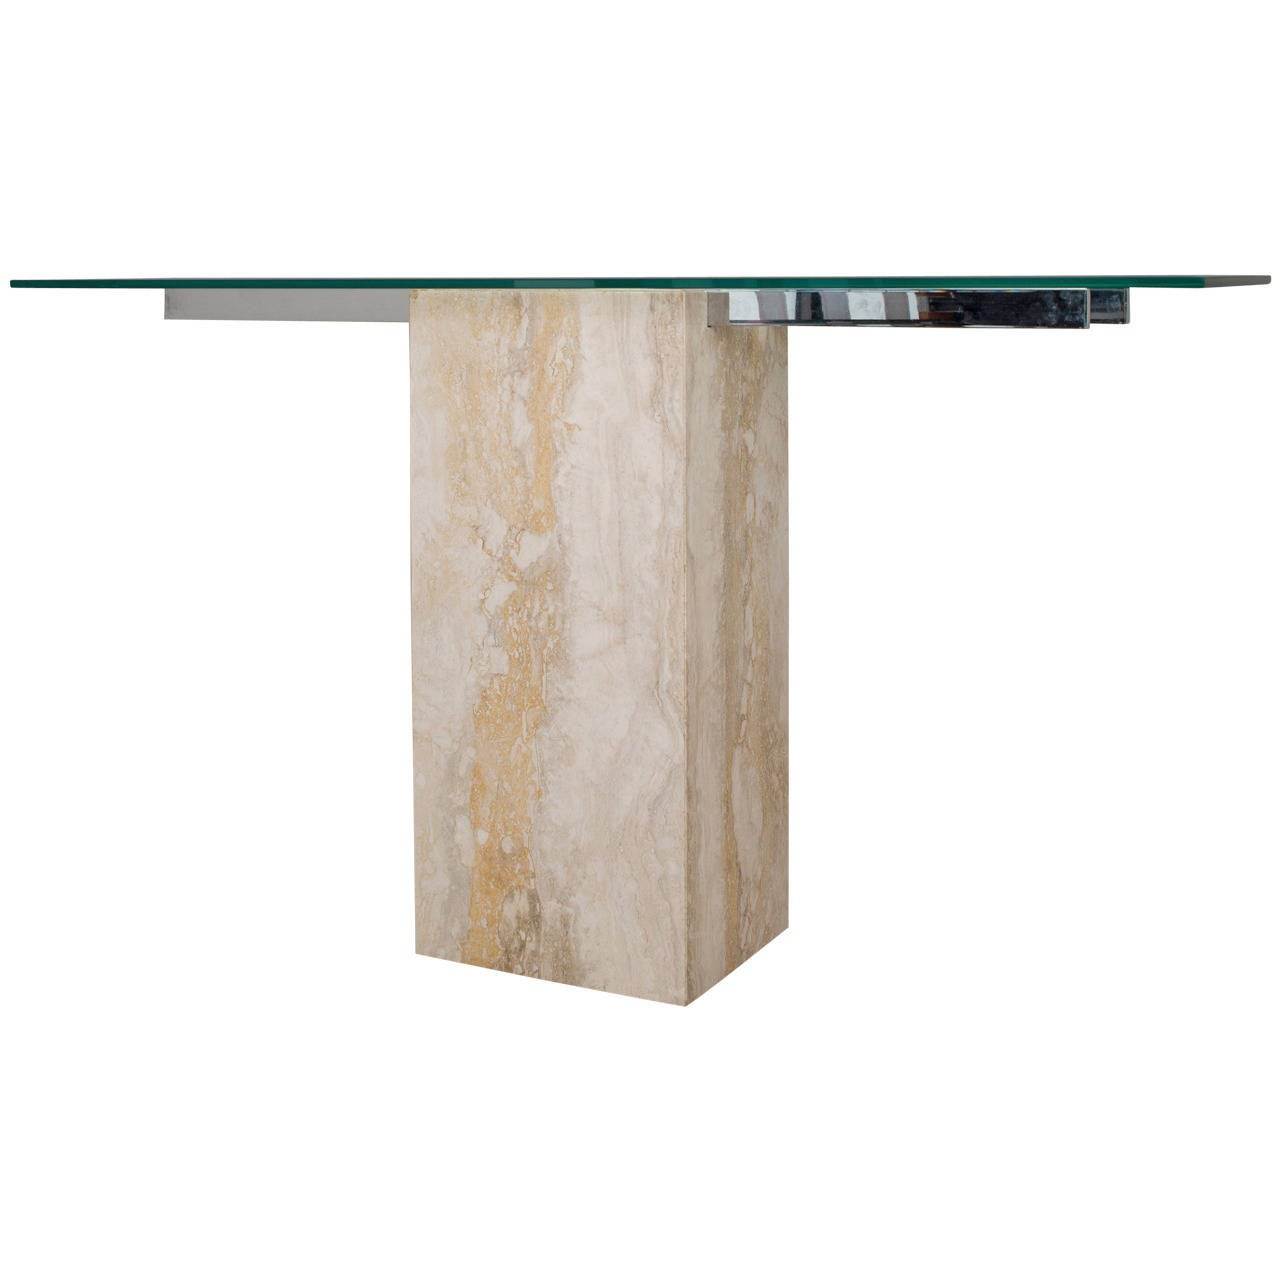 Travertine dining room table - Italian Travertine And Glass Console Table By Ello